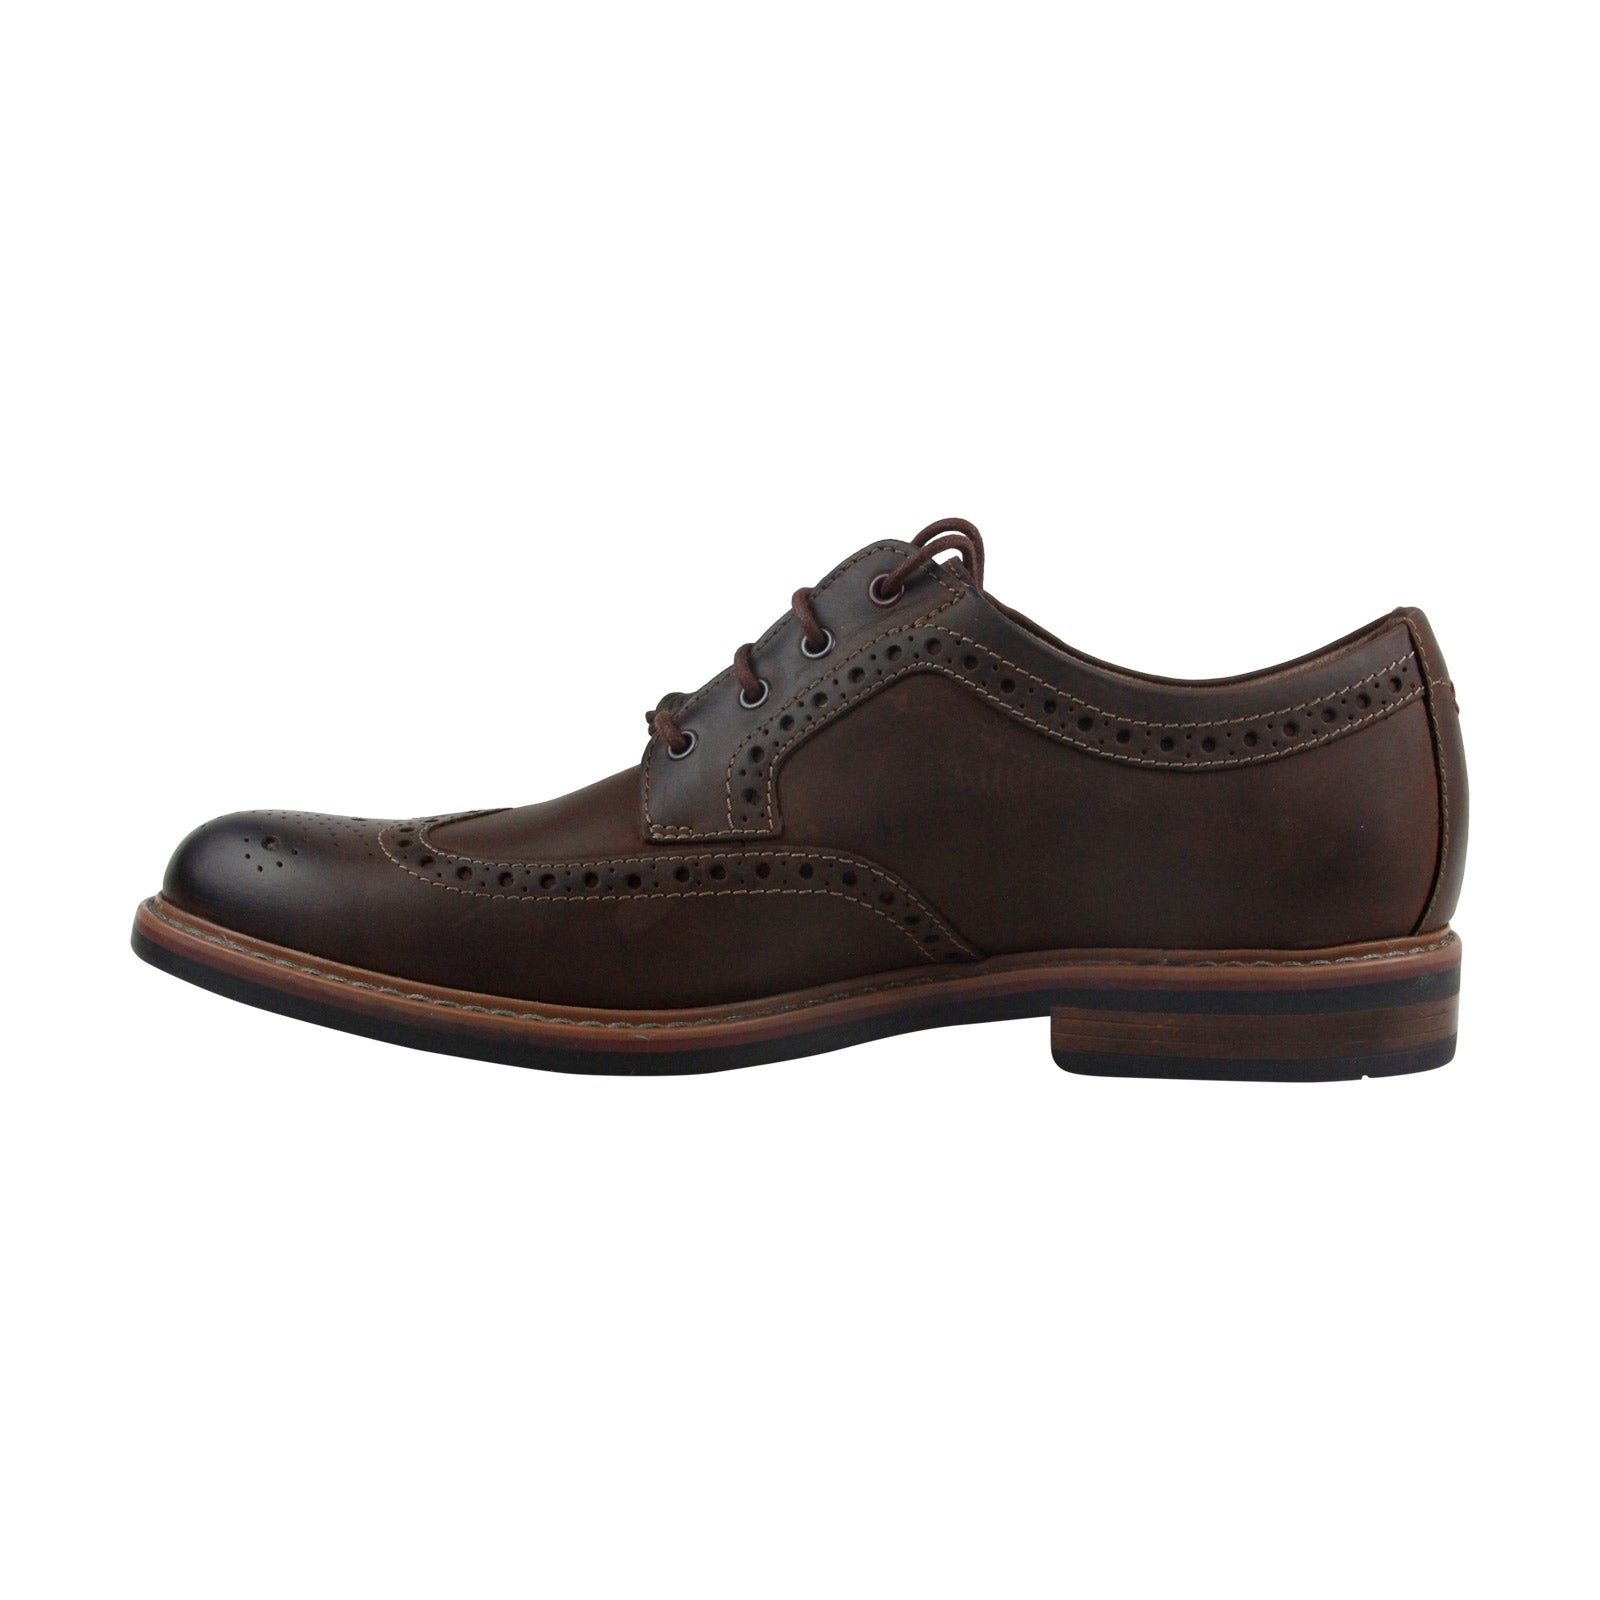 525c45636f0f5 Clarks Armon Wing Mens Brown Leather Casual Dress Lace Up Oxfords Shoes